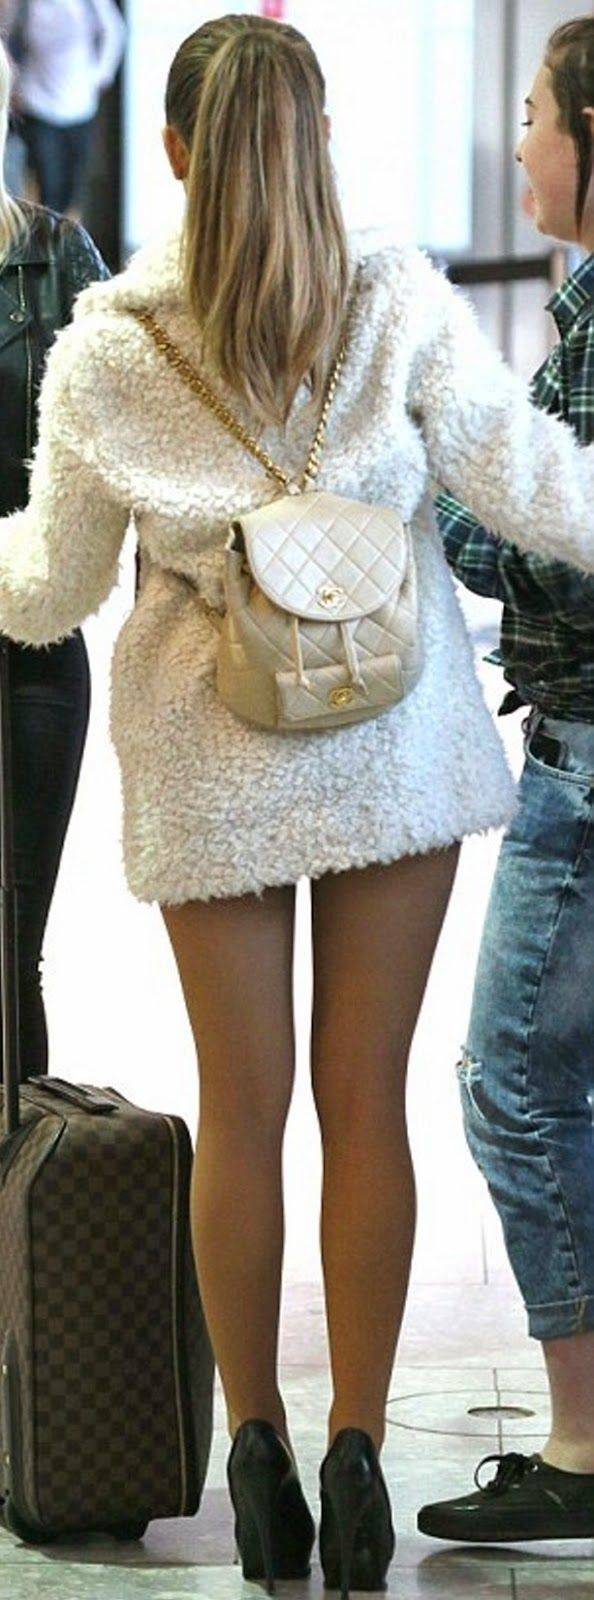 Ariana Grande Street Style - Yahoo Search Results Yahoo Image Search Results